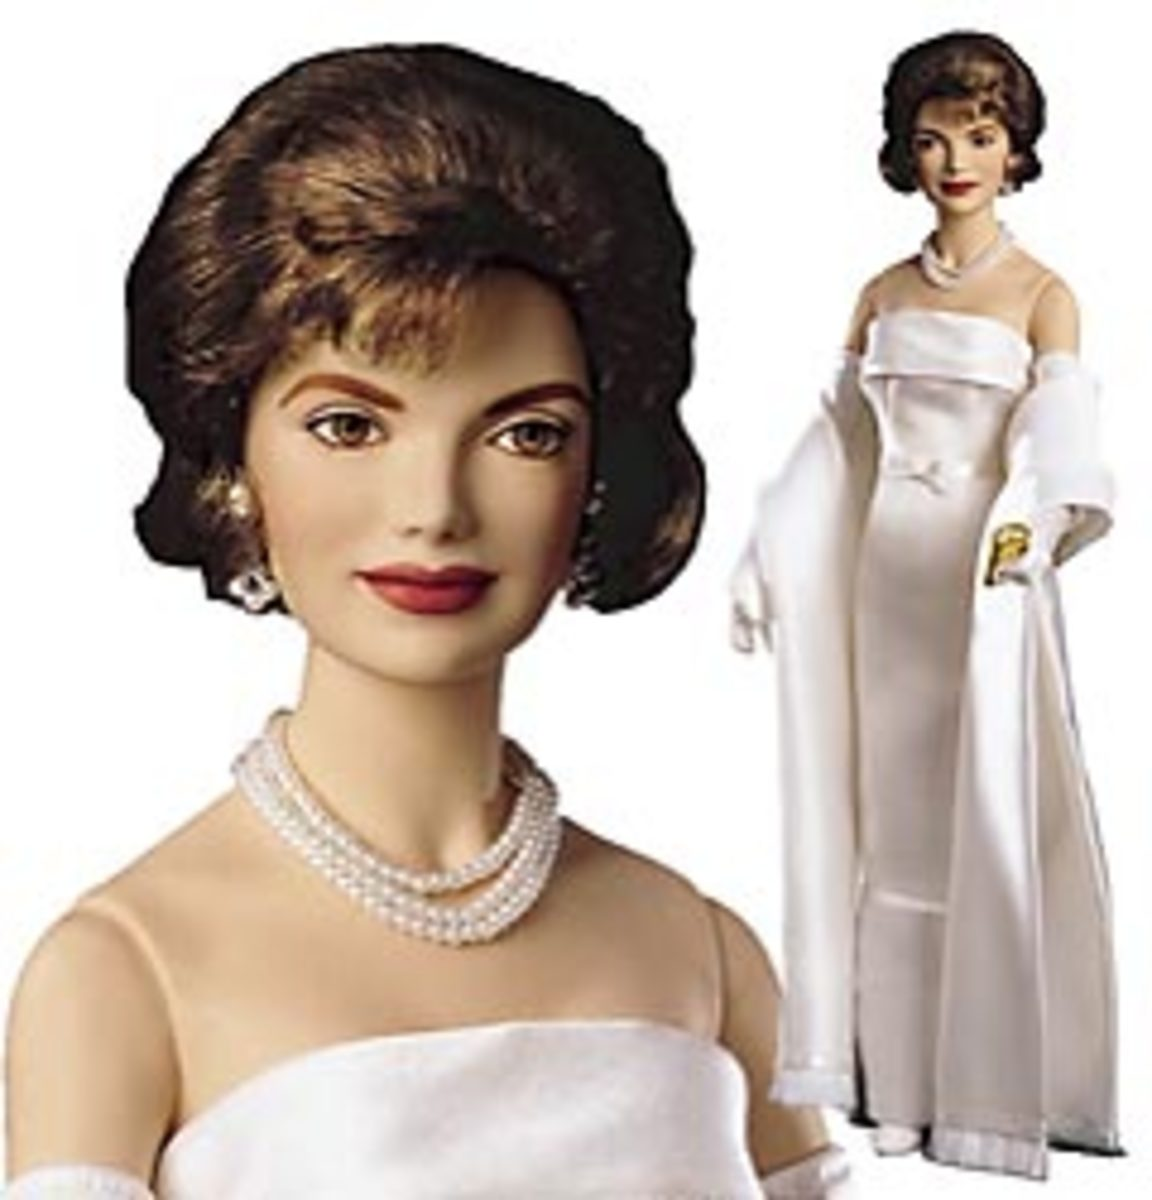 Faux 3-strand pearl necklace on Franklin Mint porcelain doll - photo courtesy of cellinifinegifts.com